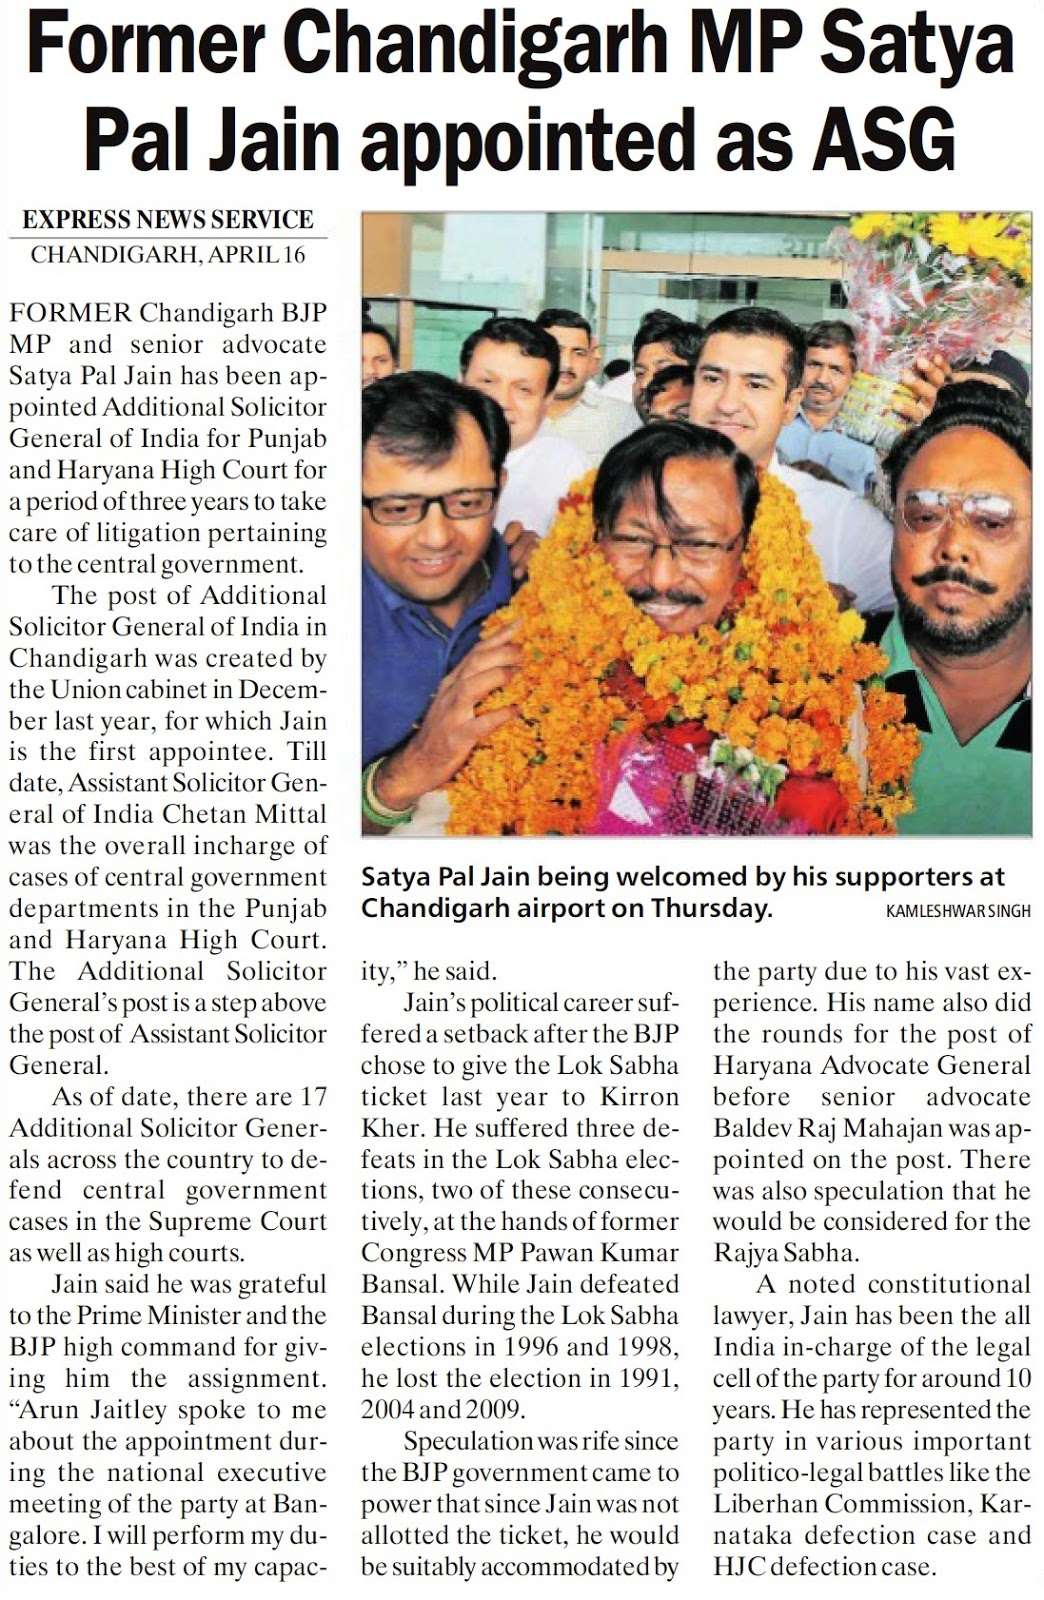 Satya Pal Jain being welcomed by his supporters at Chandigarh airport on Thursday.